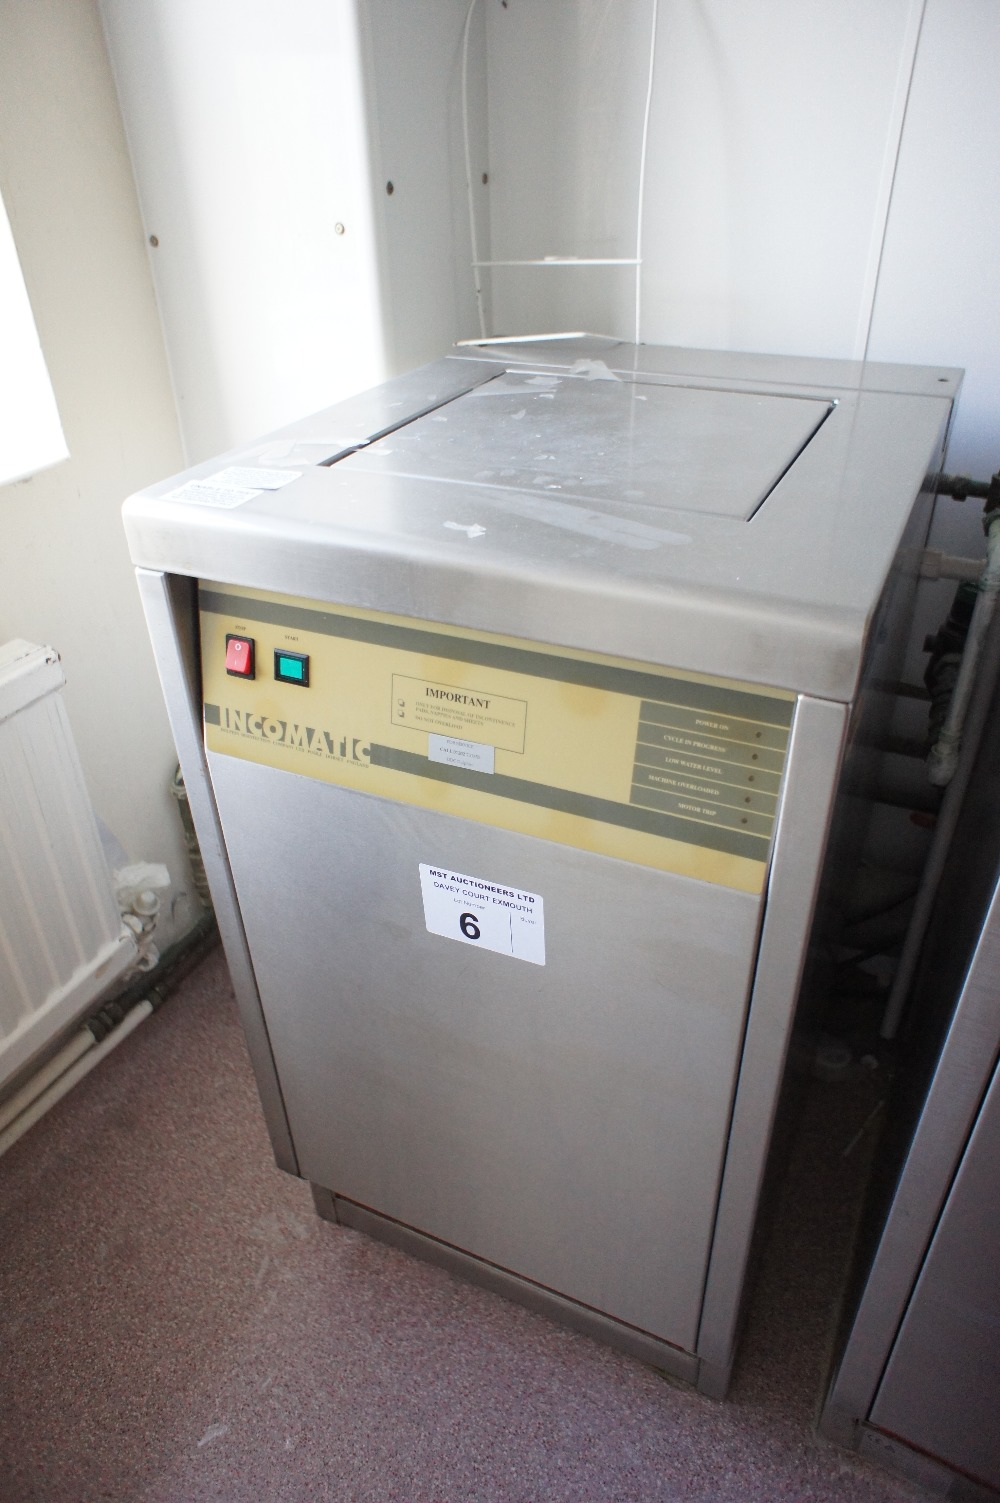 Lot 6 - 1 INCOMATIC stainless steel commercial macerator/sluice machine (located in room 2, Davey Court)